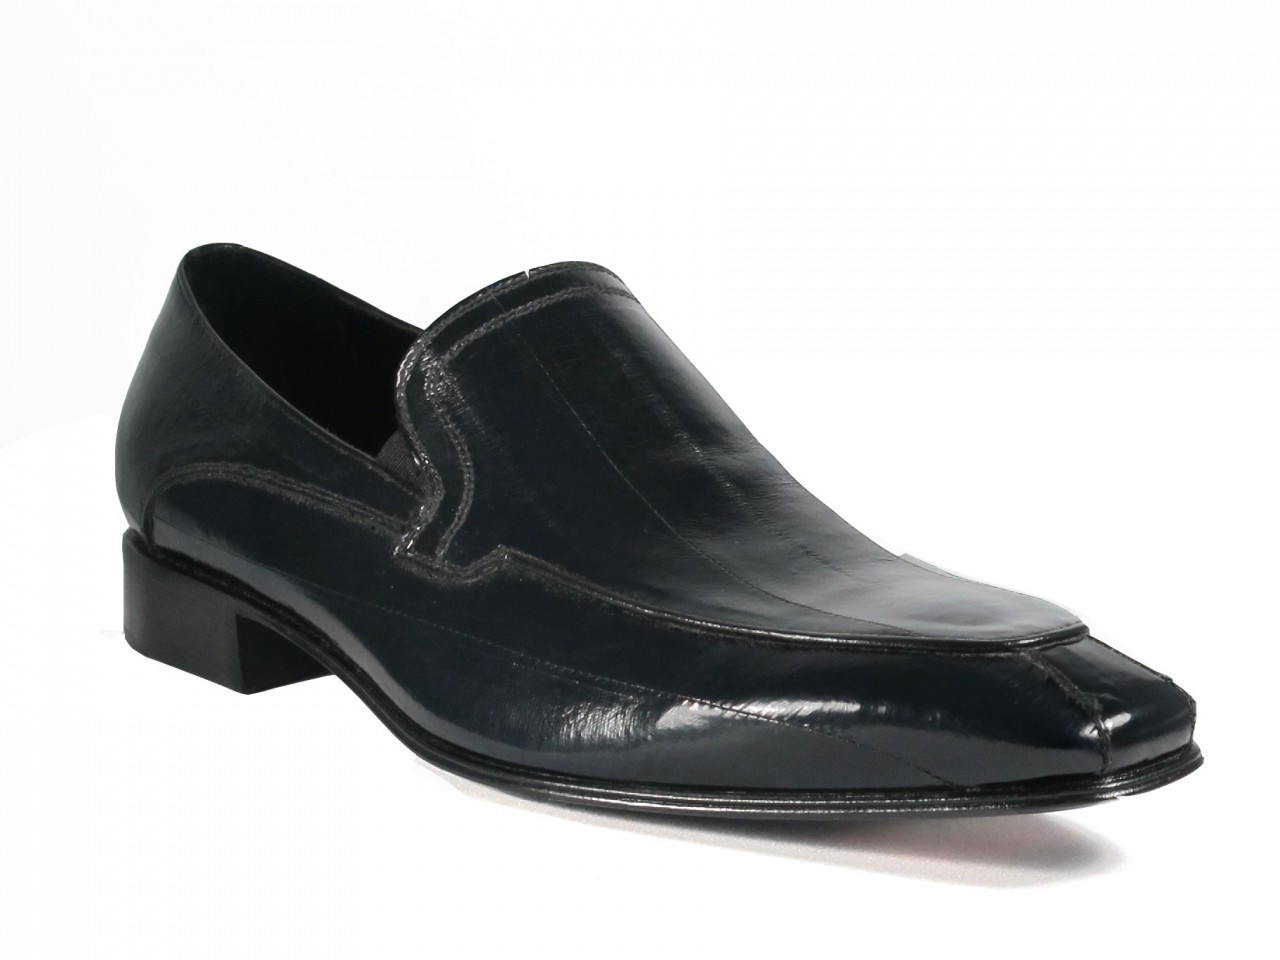 94ae5af7c L.Lancio Men s Eel Skin Slip-on Italian Shoes 6692 Black